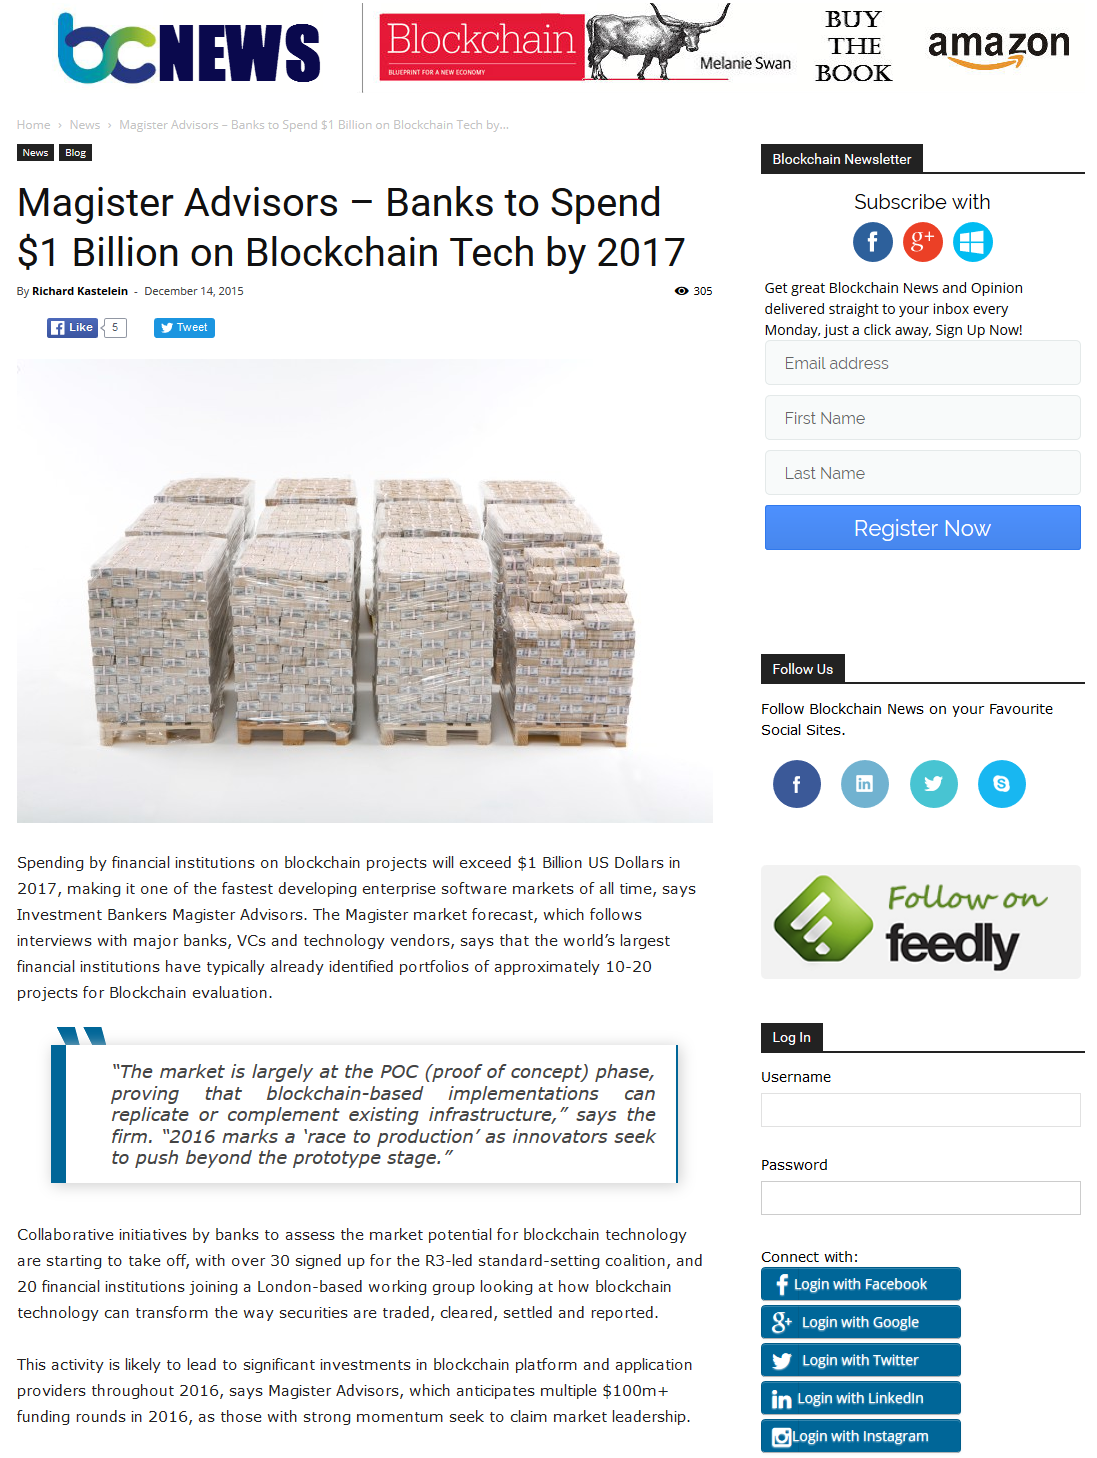 Magister Advisors – Banks to Spend $1 Billion on Blockchain Tech by 2017